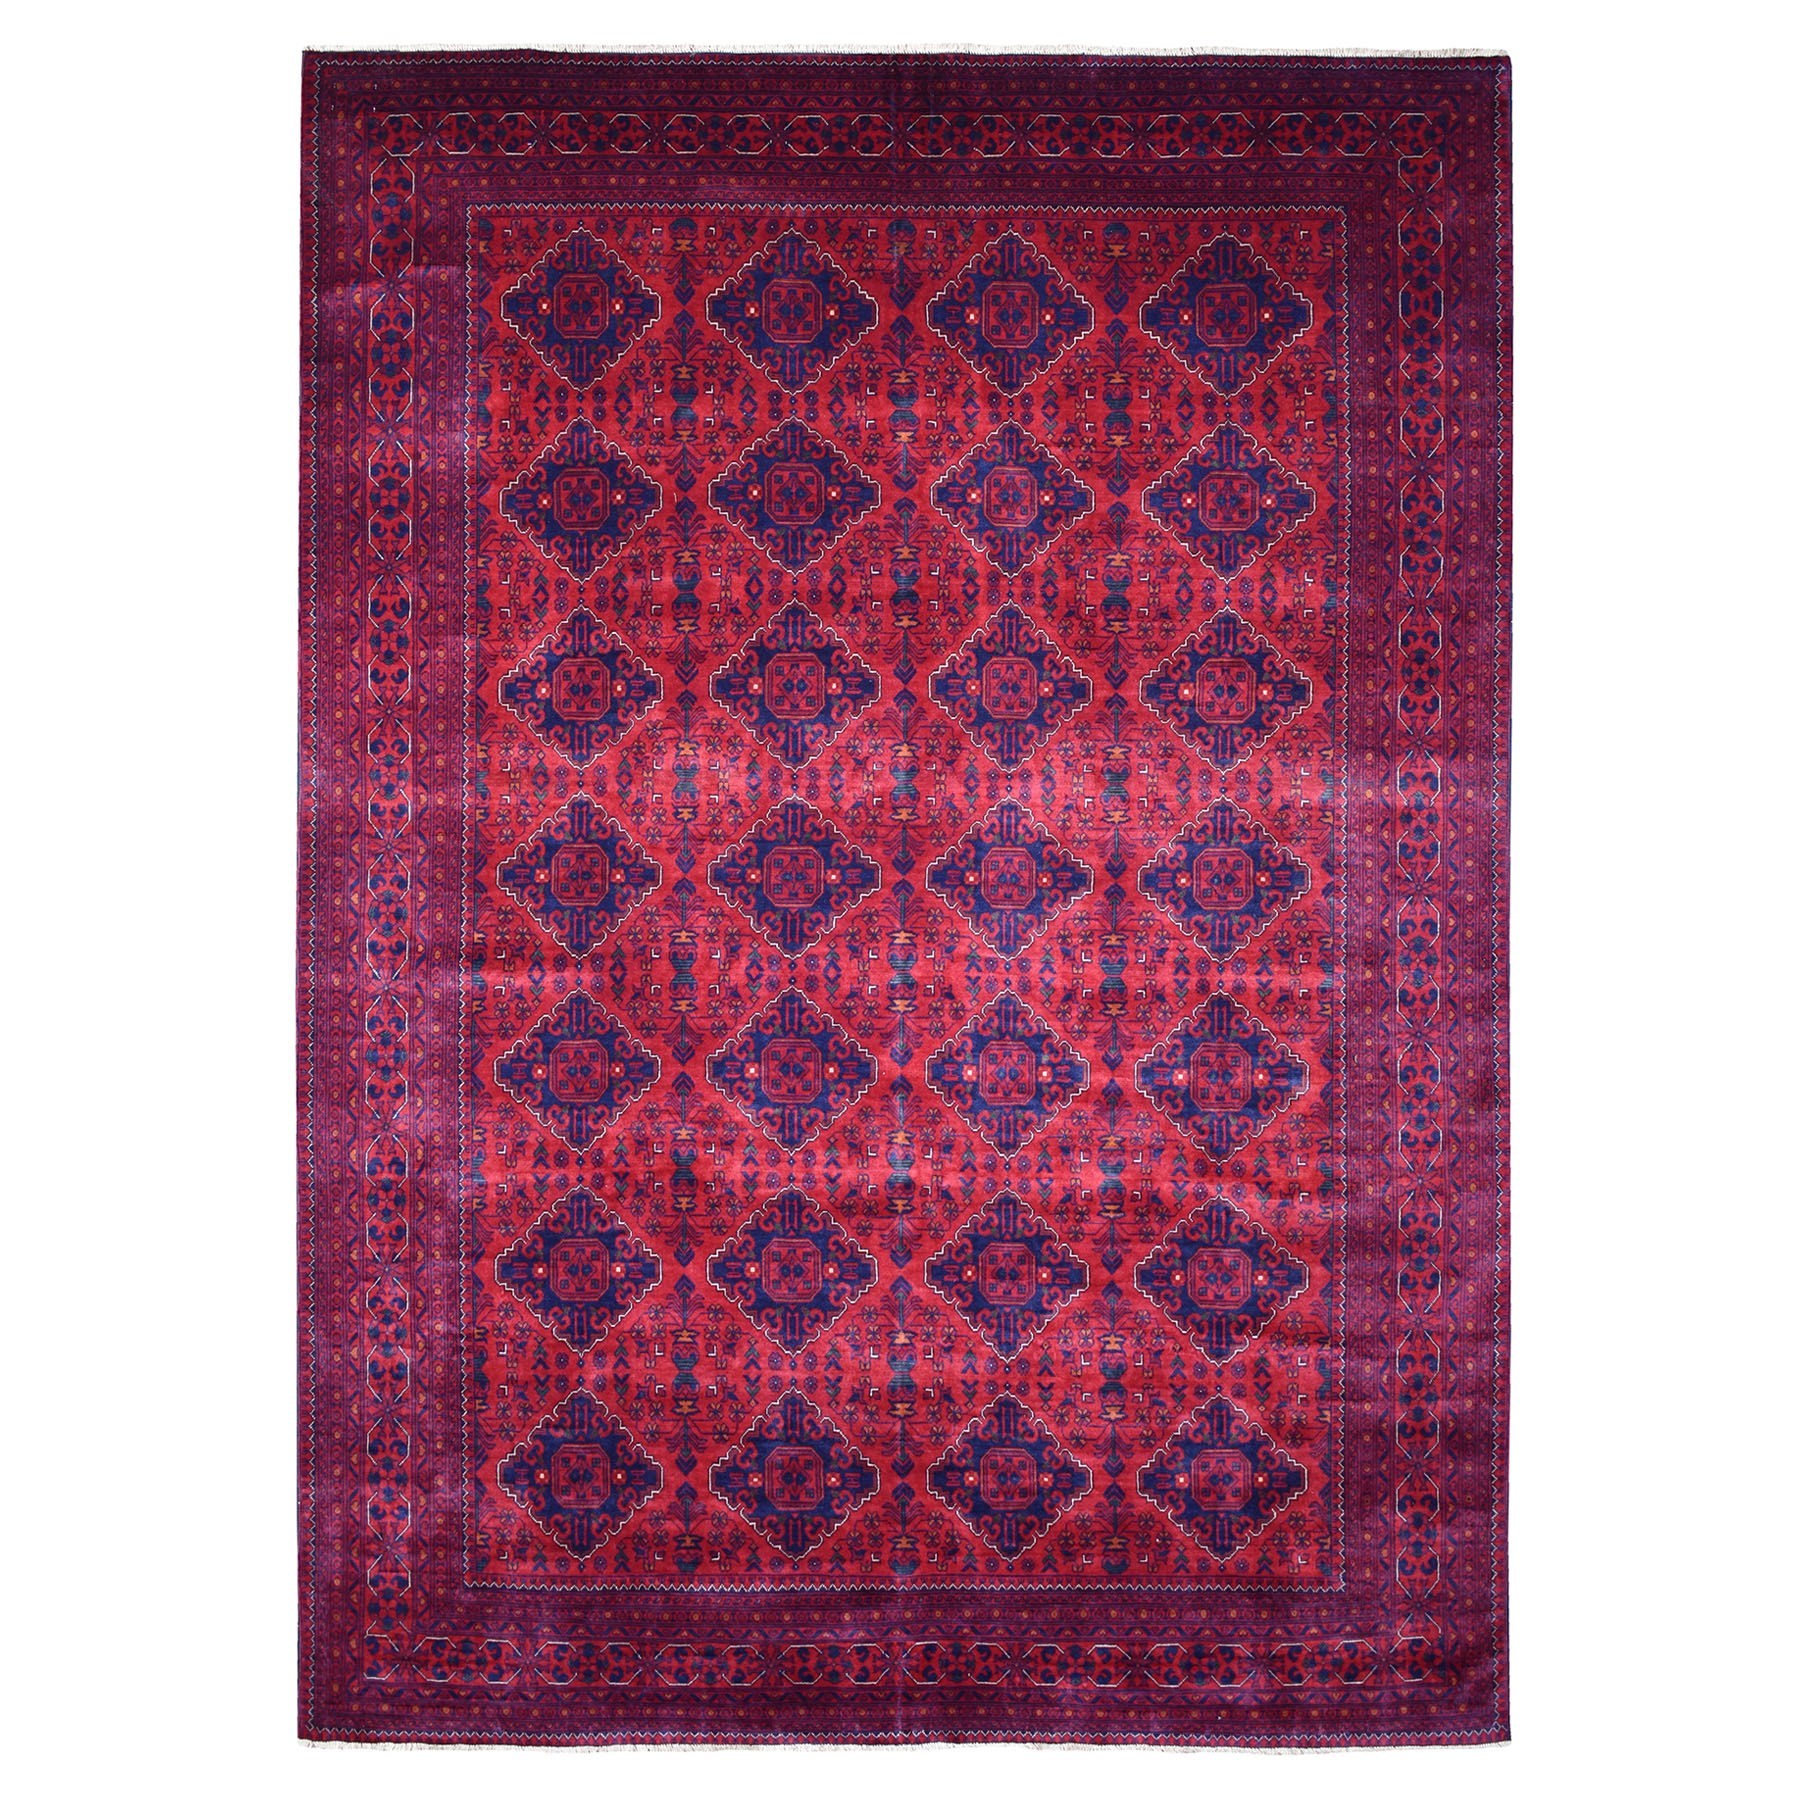 Nomadic And Village Collection Hand Knotted Red Rug No: 1135576